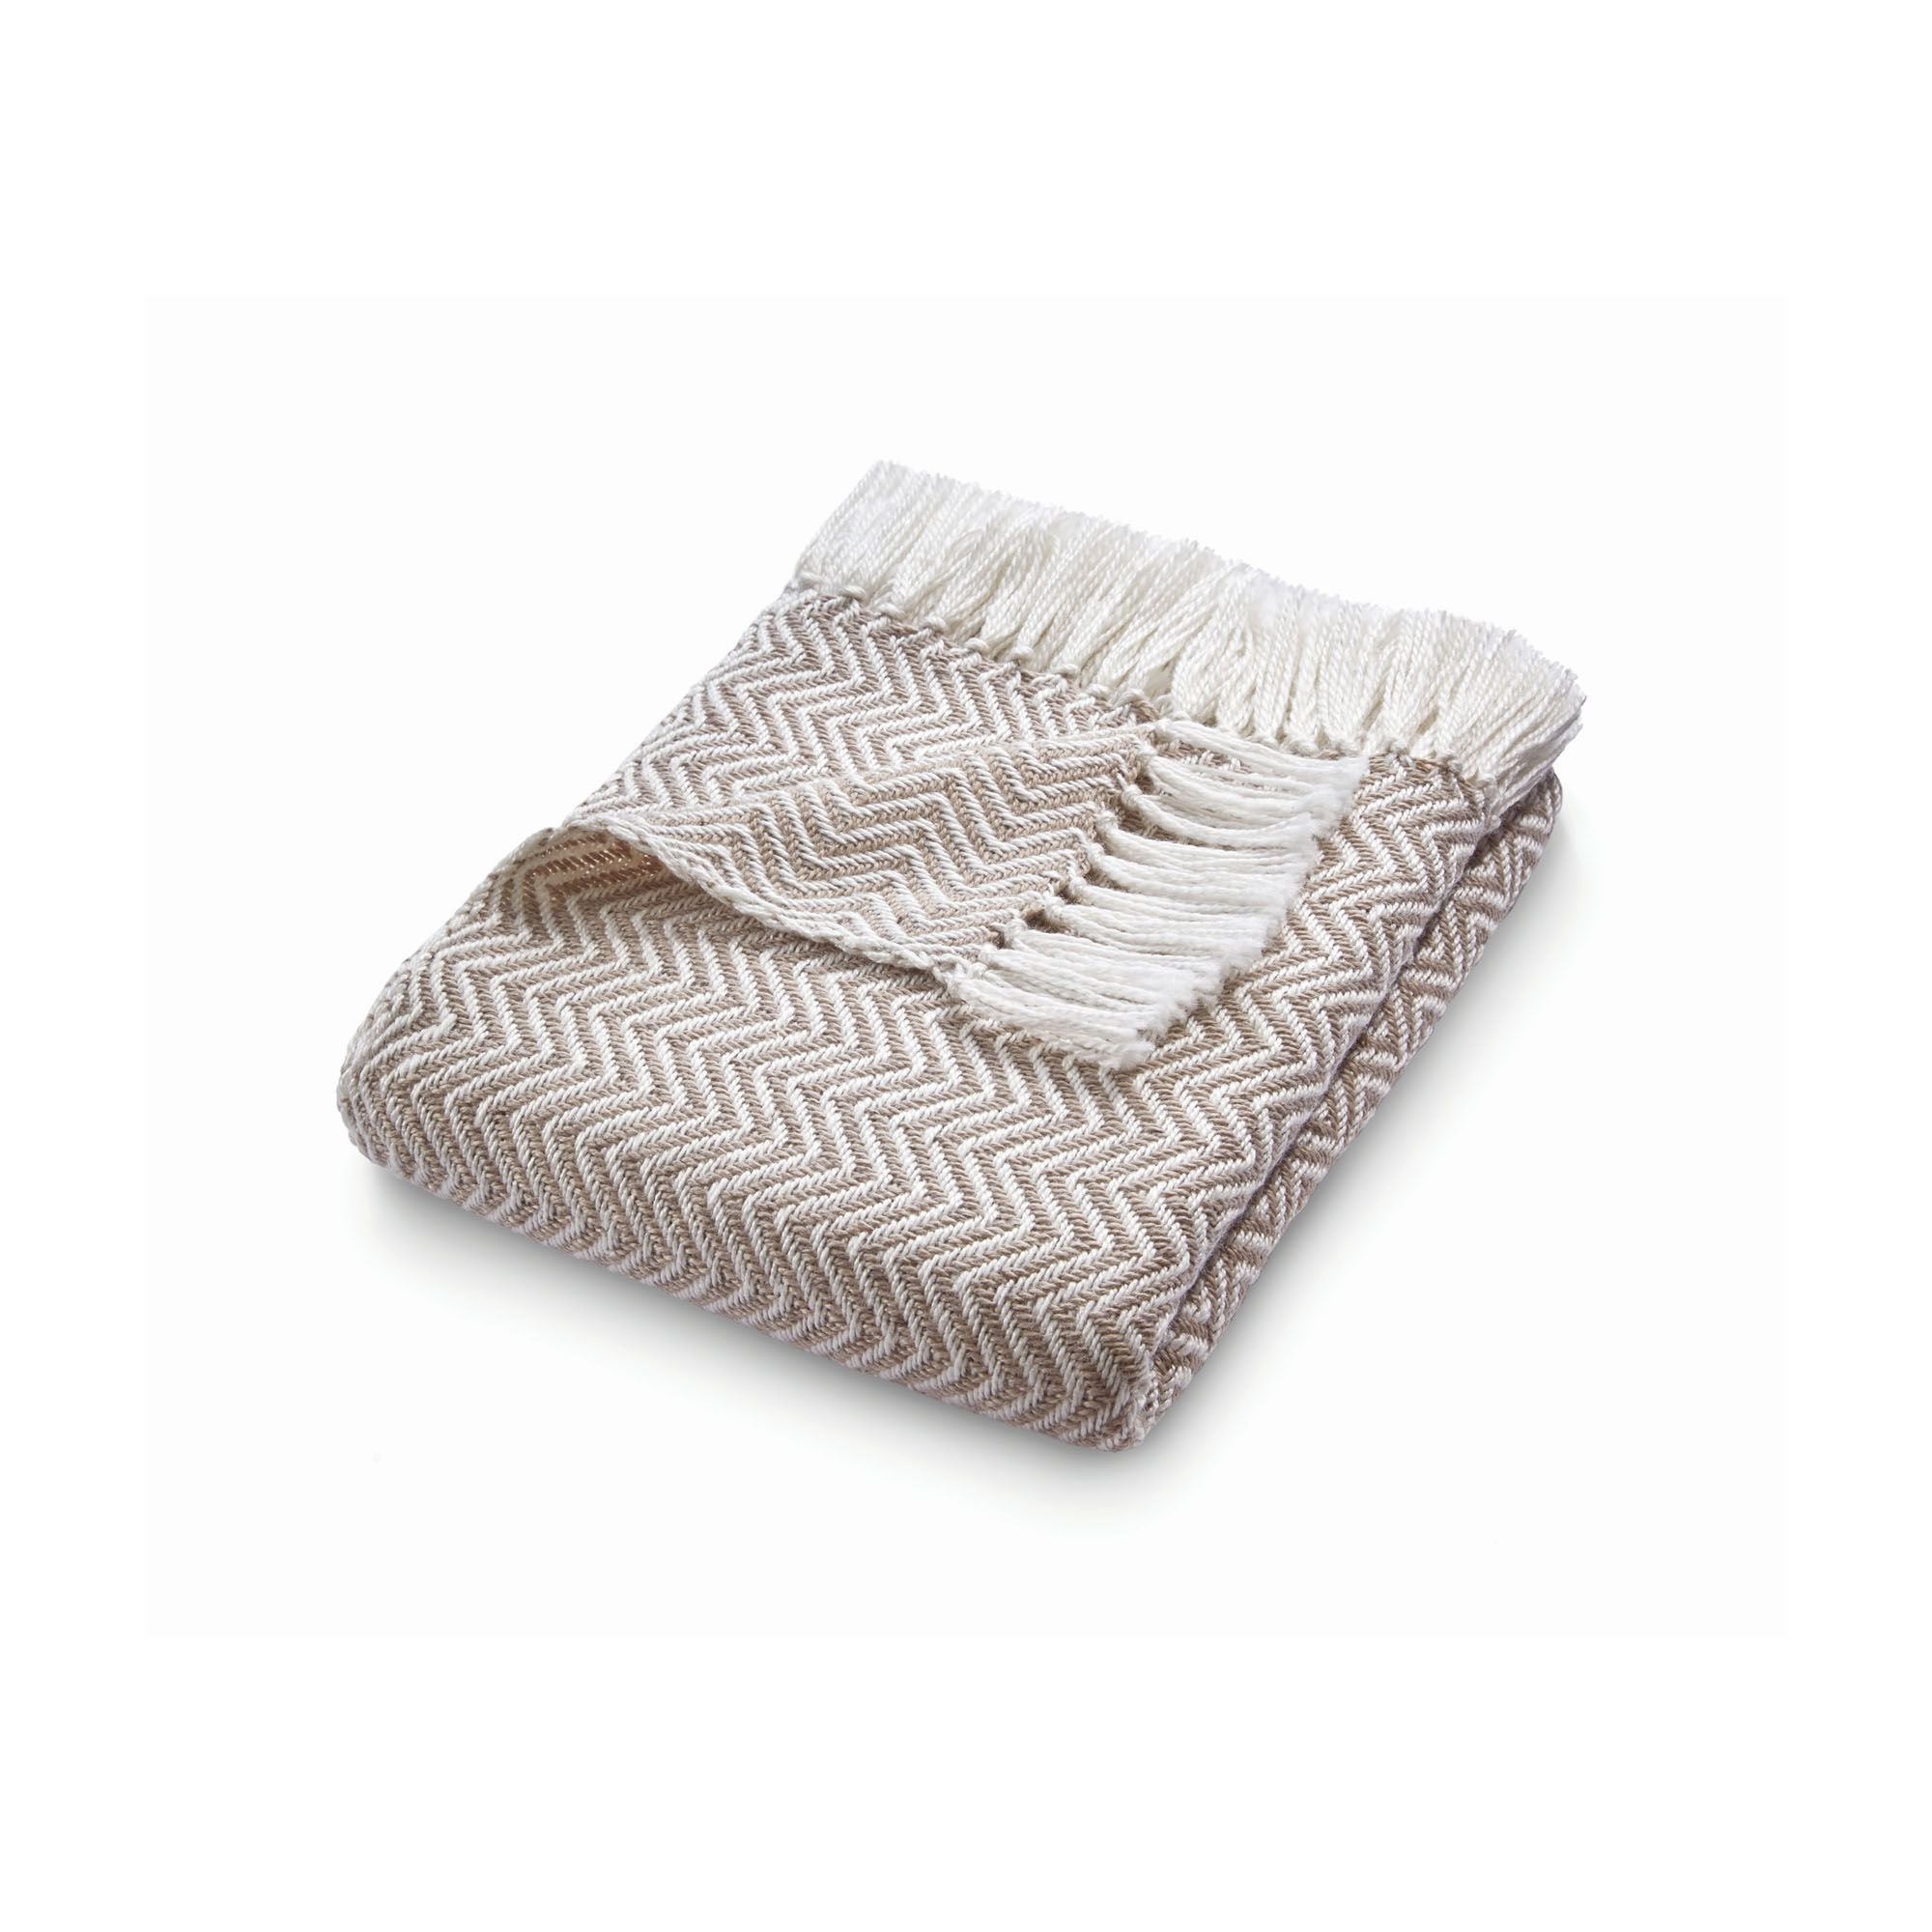 Eco-friendly throw, natural